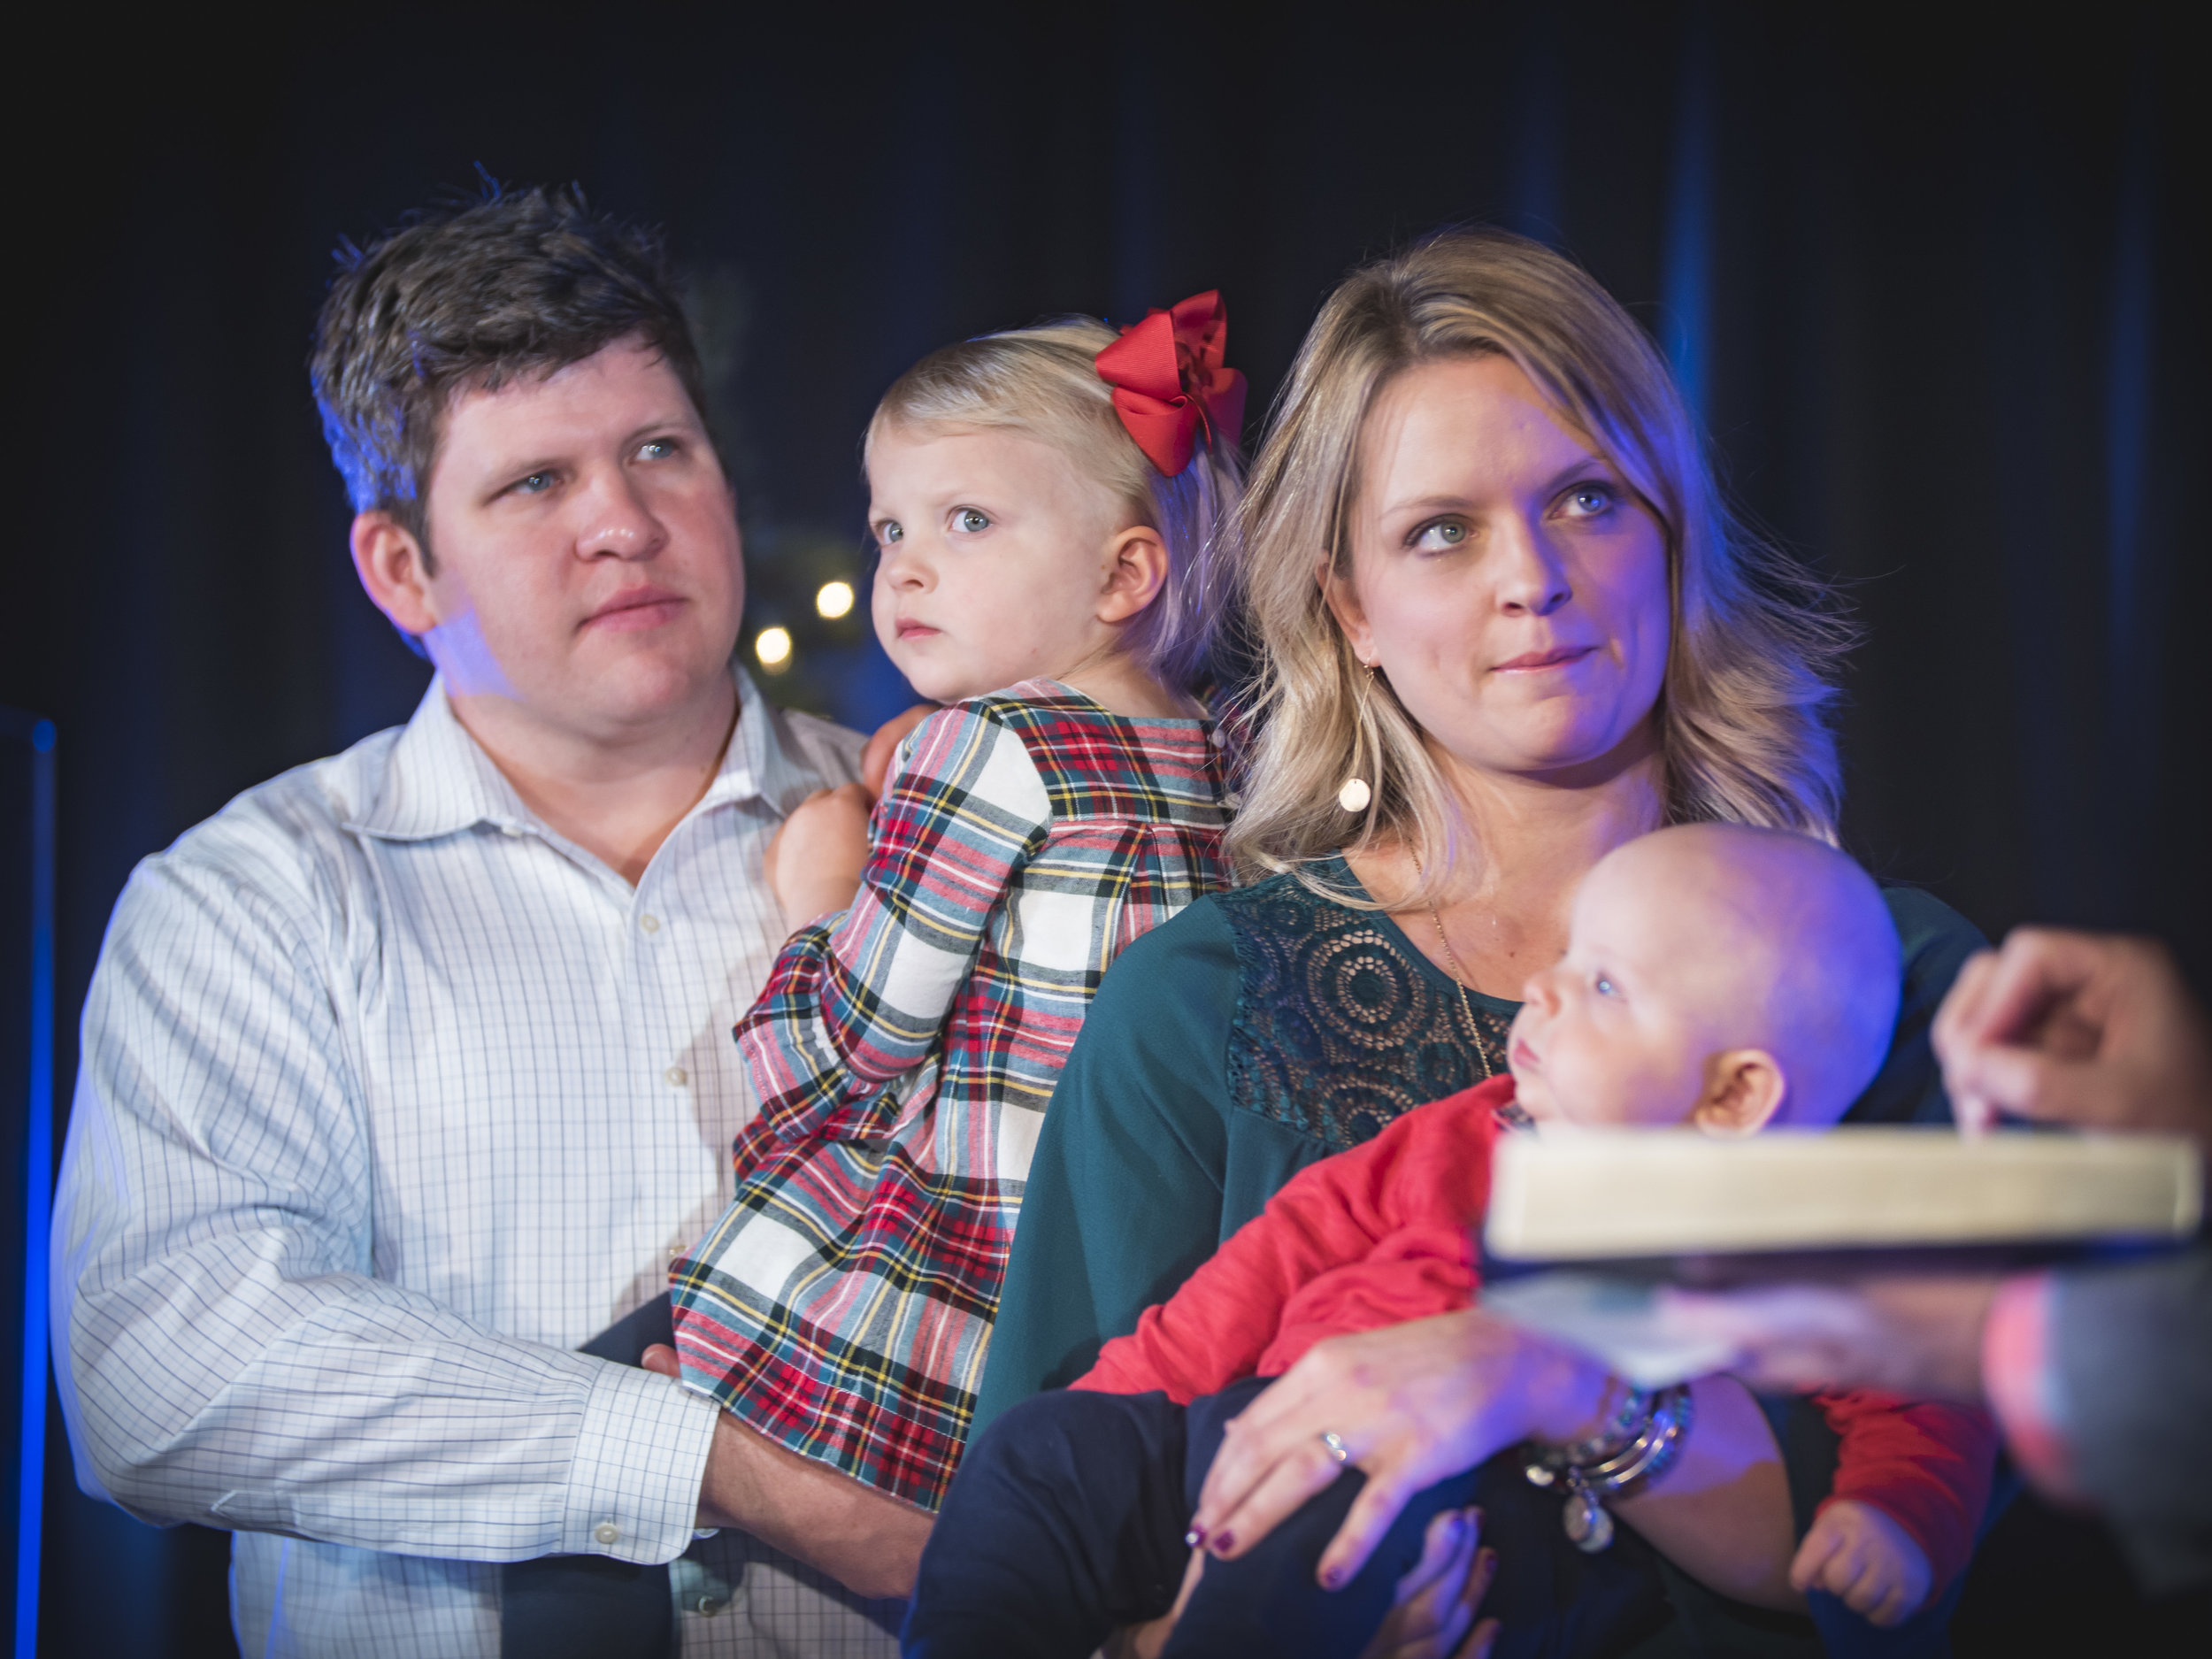 Child Dedication - Our next one is February 24th!